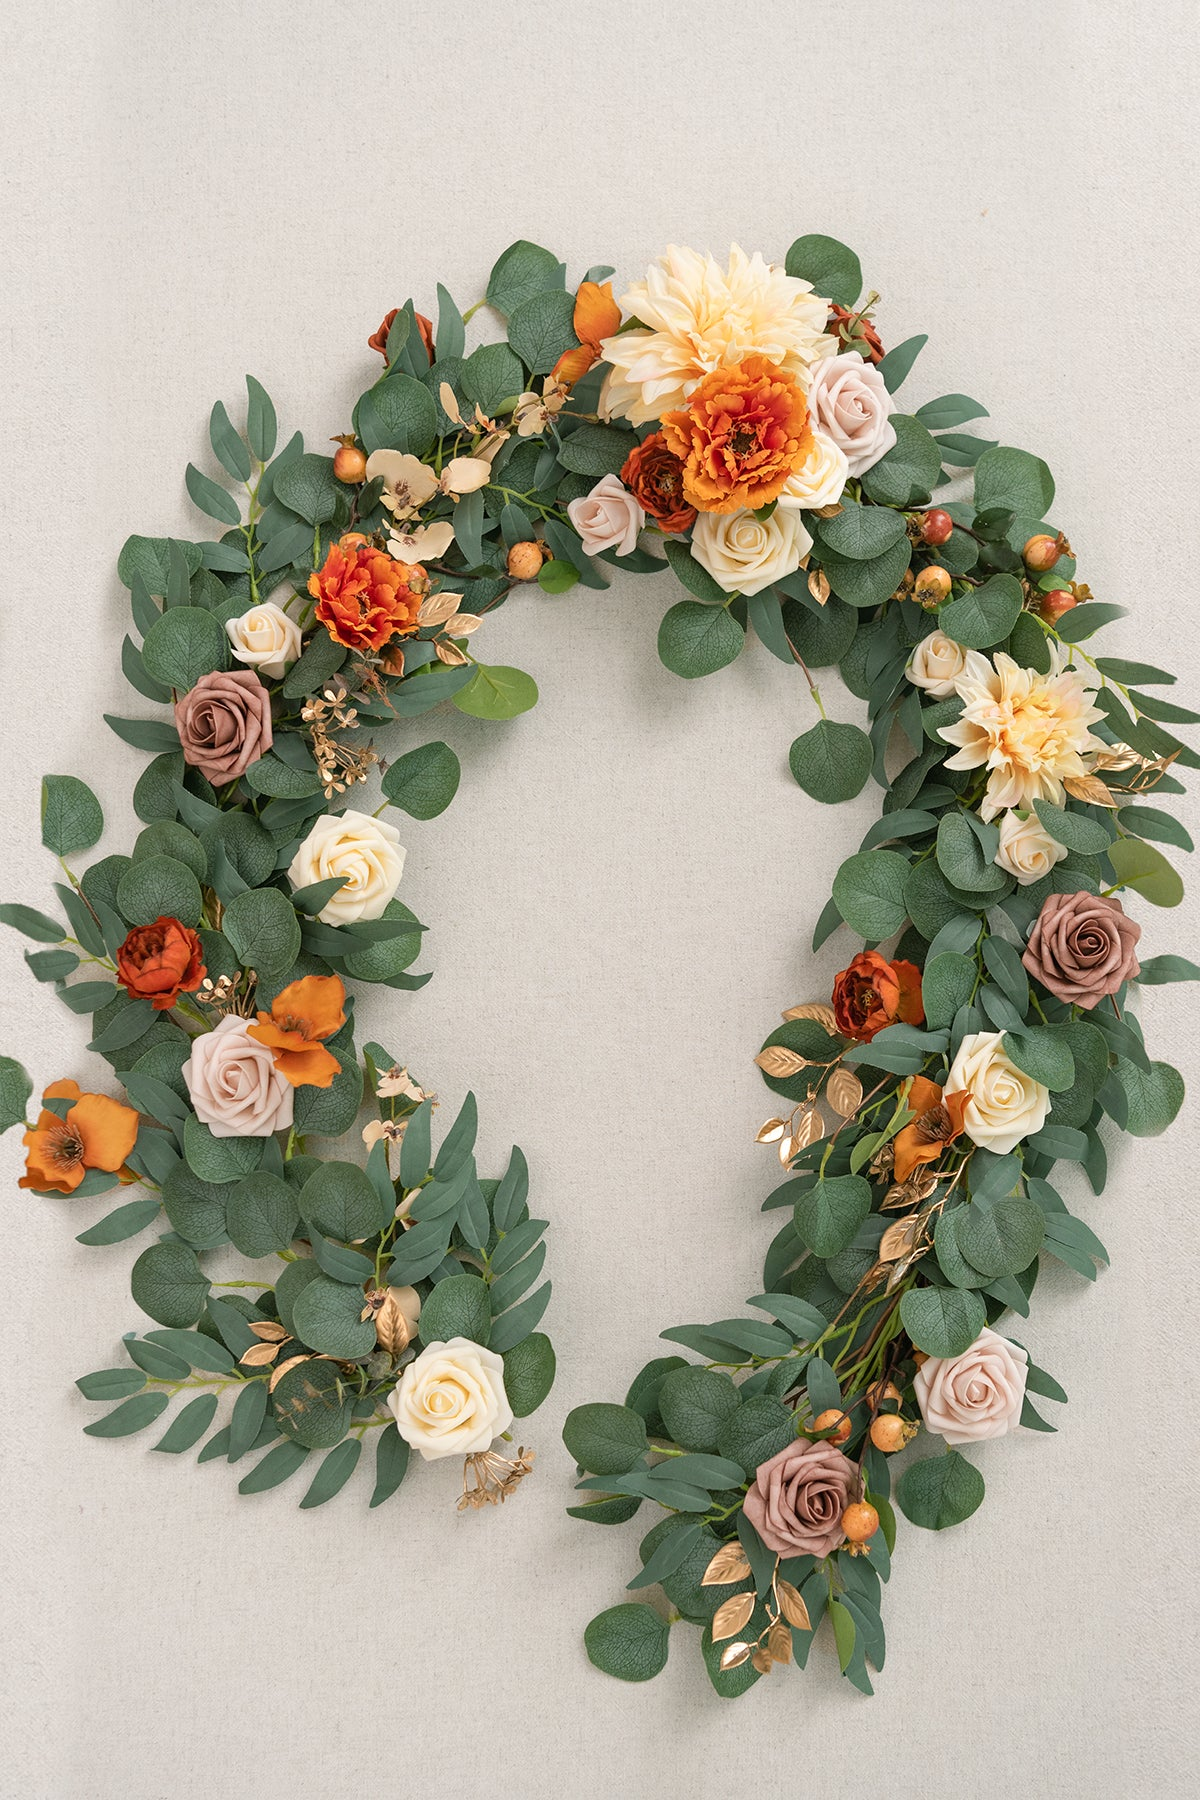 Eucalyptus and Willow Leaf  Flower Garland 6.5FT - Mellow Terracotta